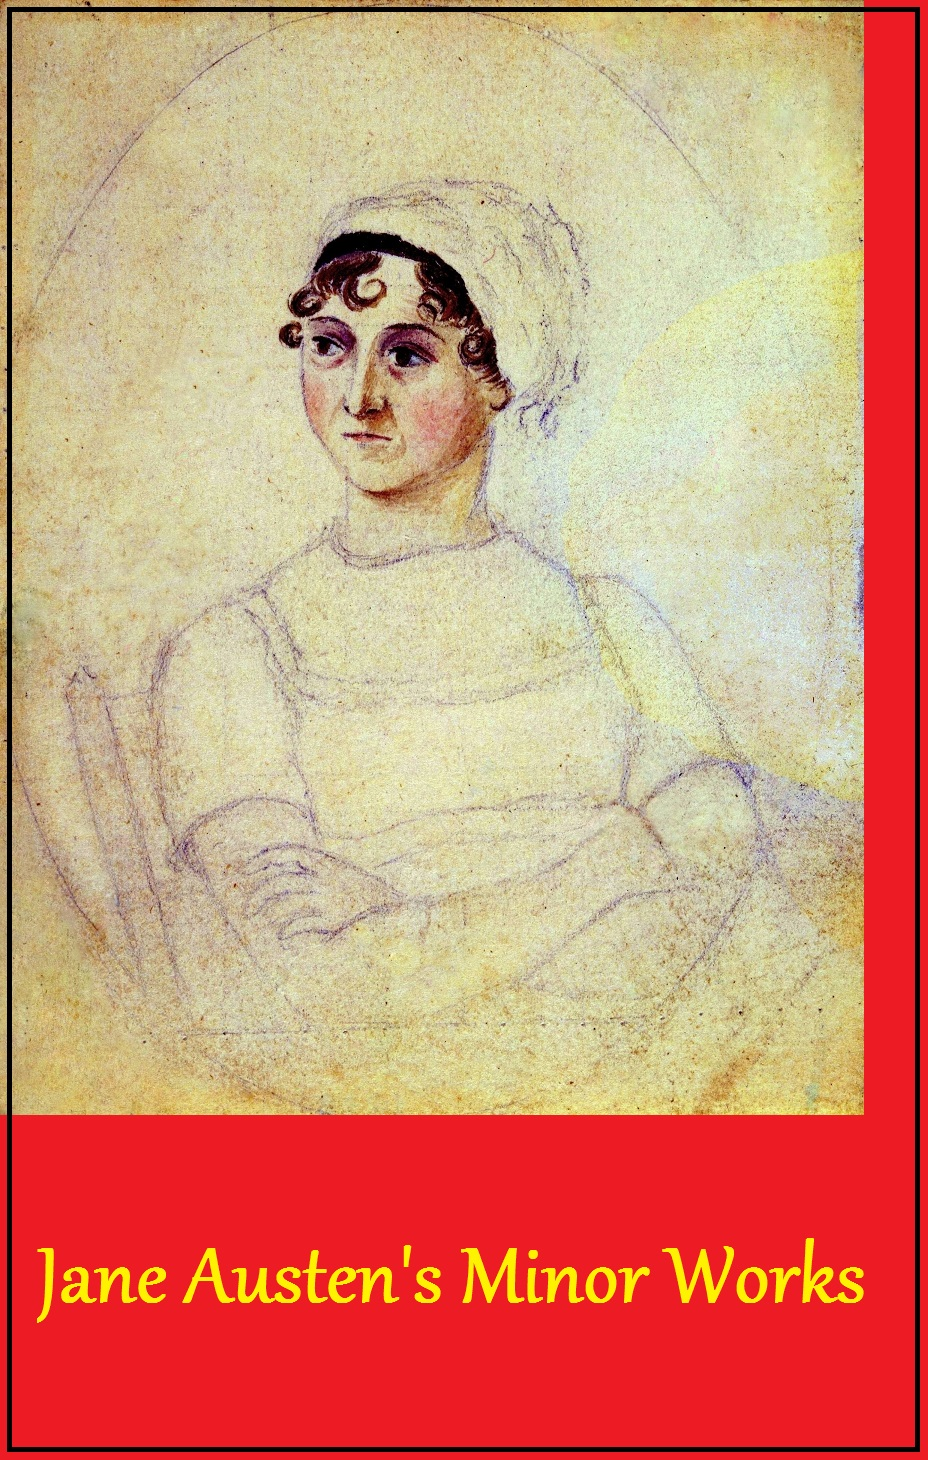 Jane Austen's Minor Works